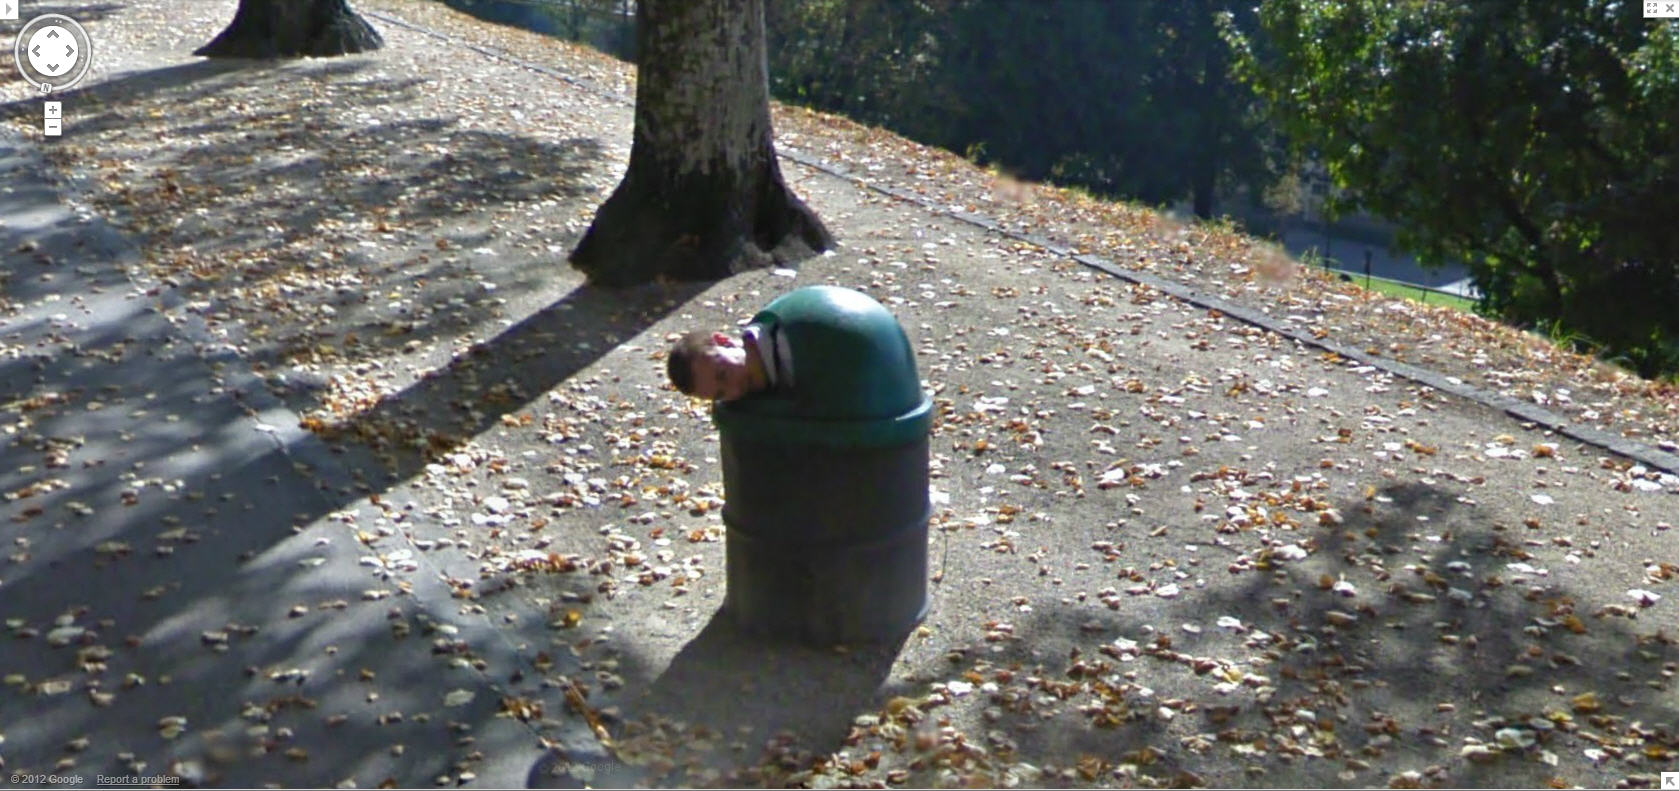 google-maps-street-view-switzerland-captures-a-guy-with-head-out-of-the-trash